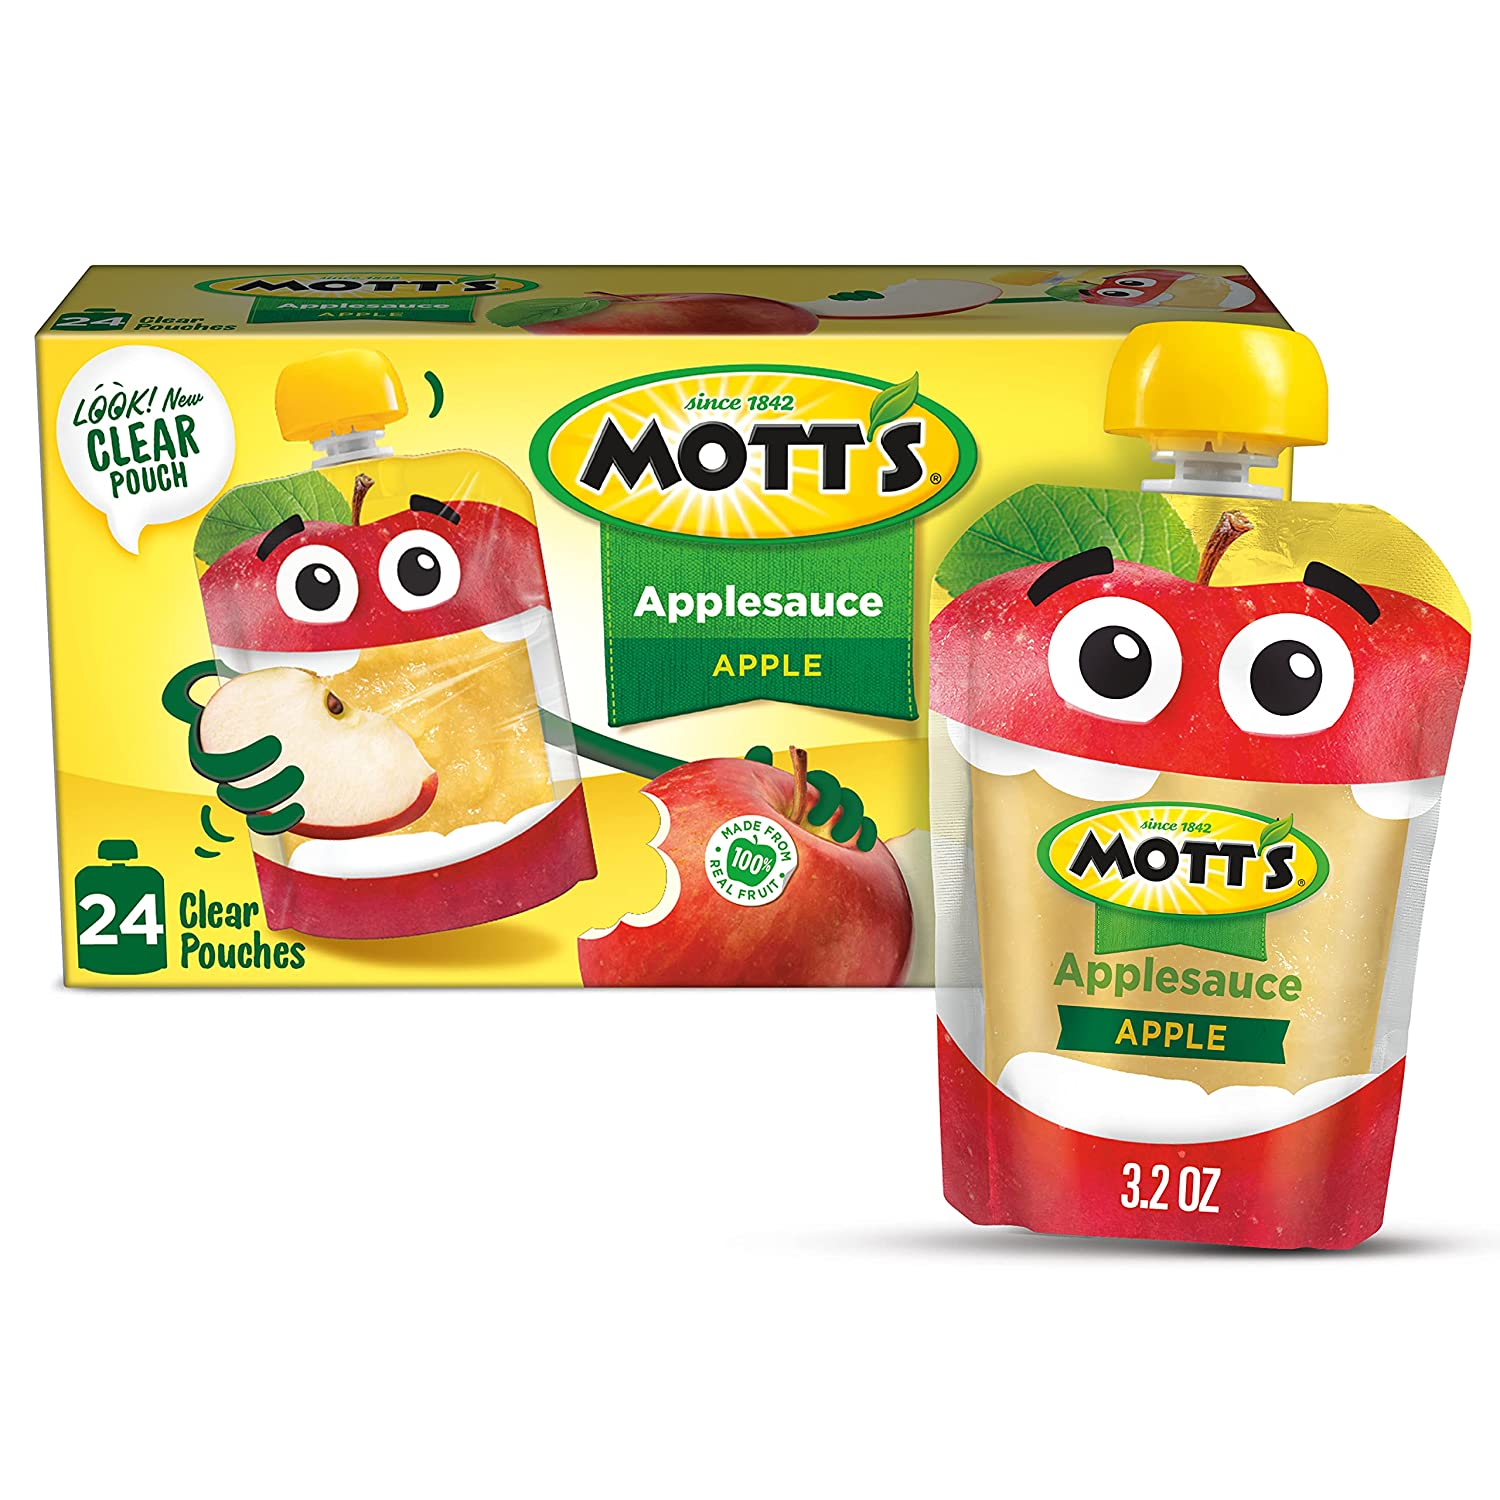 Mott's Applesauce, 3.2 Ounce Pouch, 4 Count (Pack of 6)